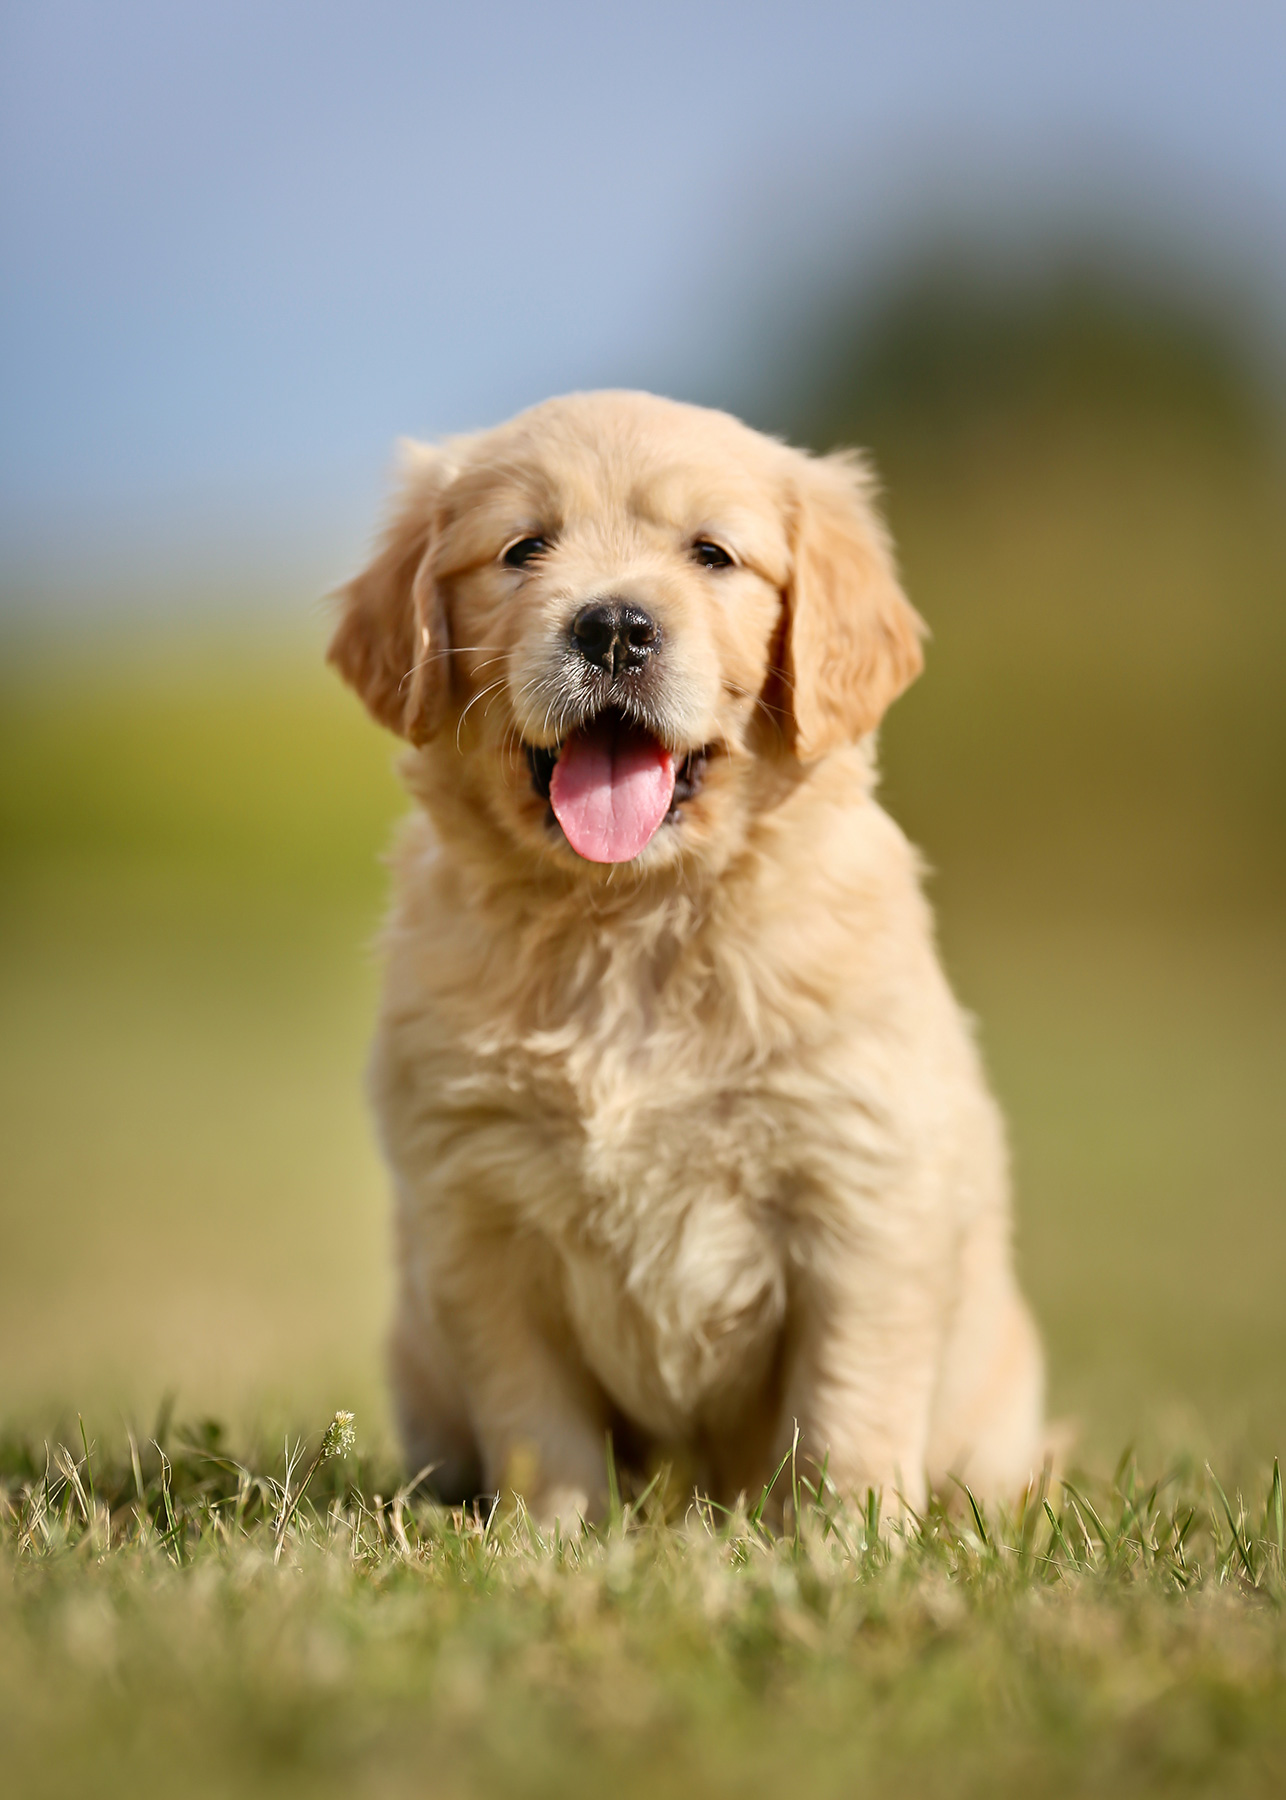 Golden retriever puppy sitting on grass